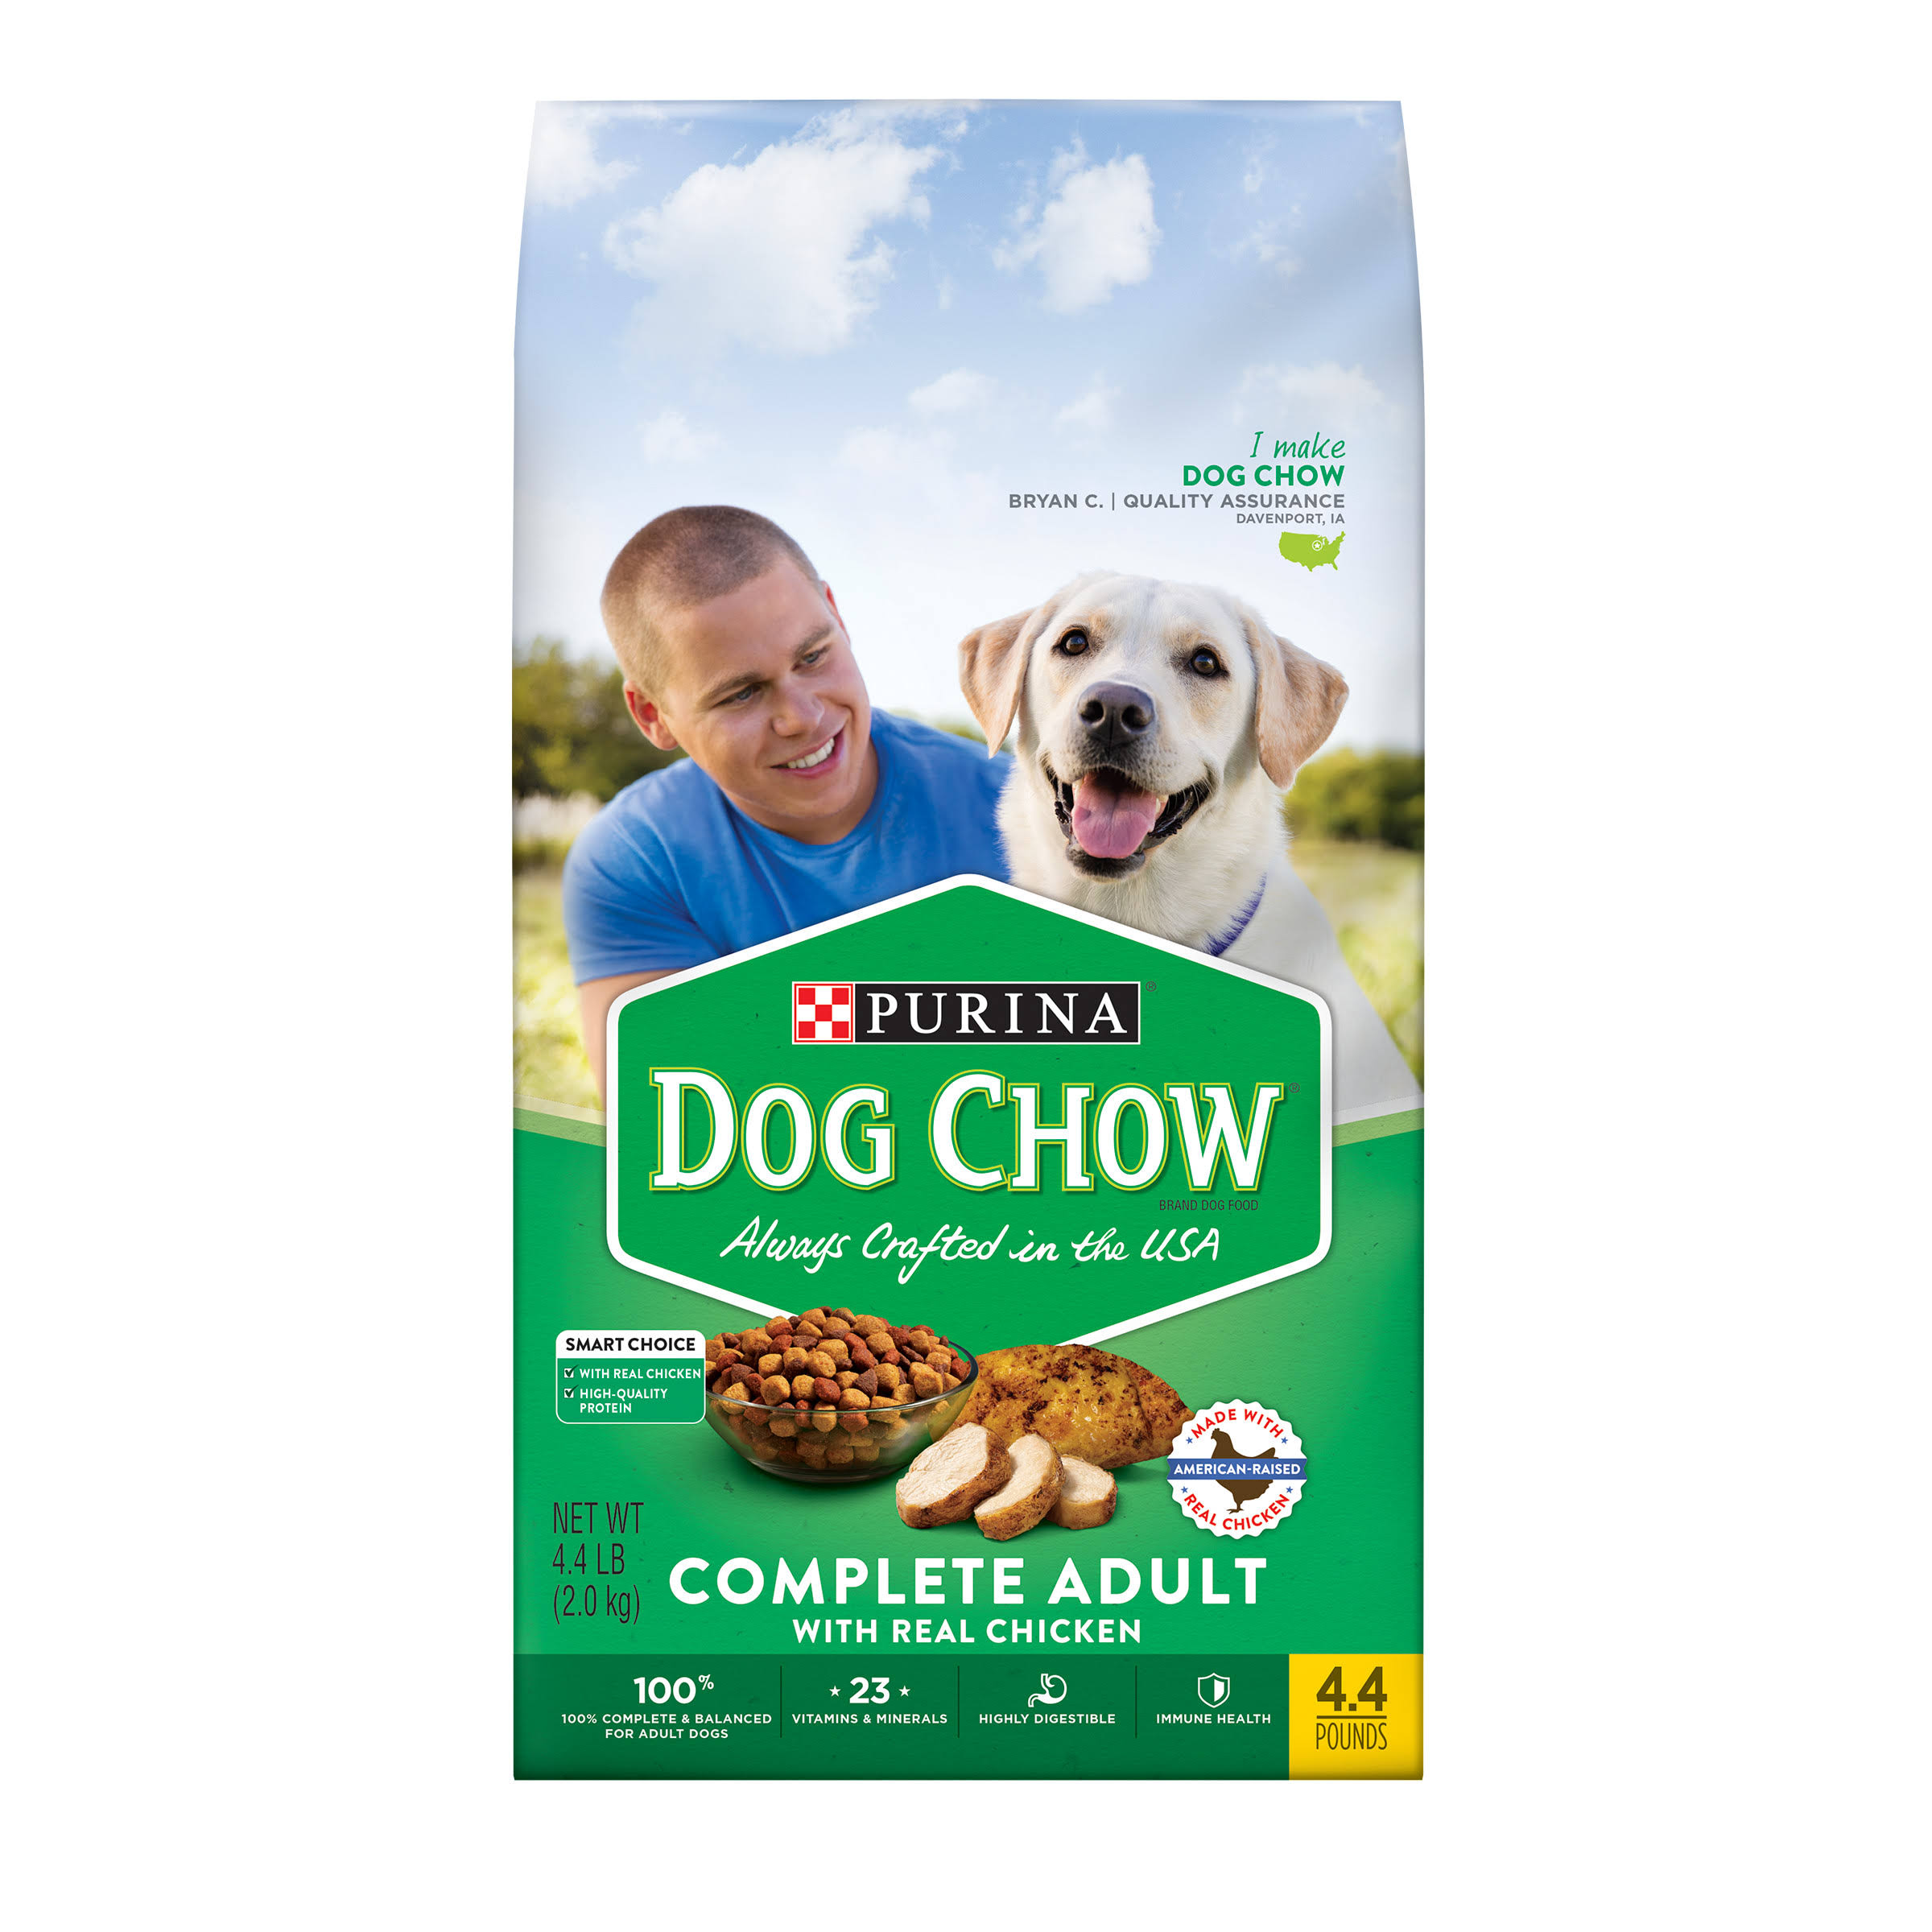 Purina Dog Chow Complete Adult Dog Food - 4.4 lb, Chicken Flavor